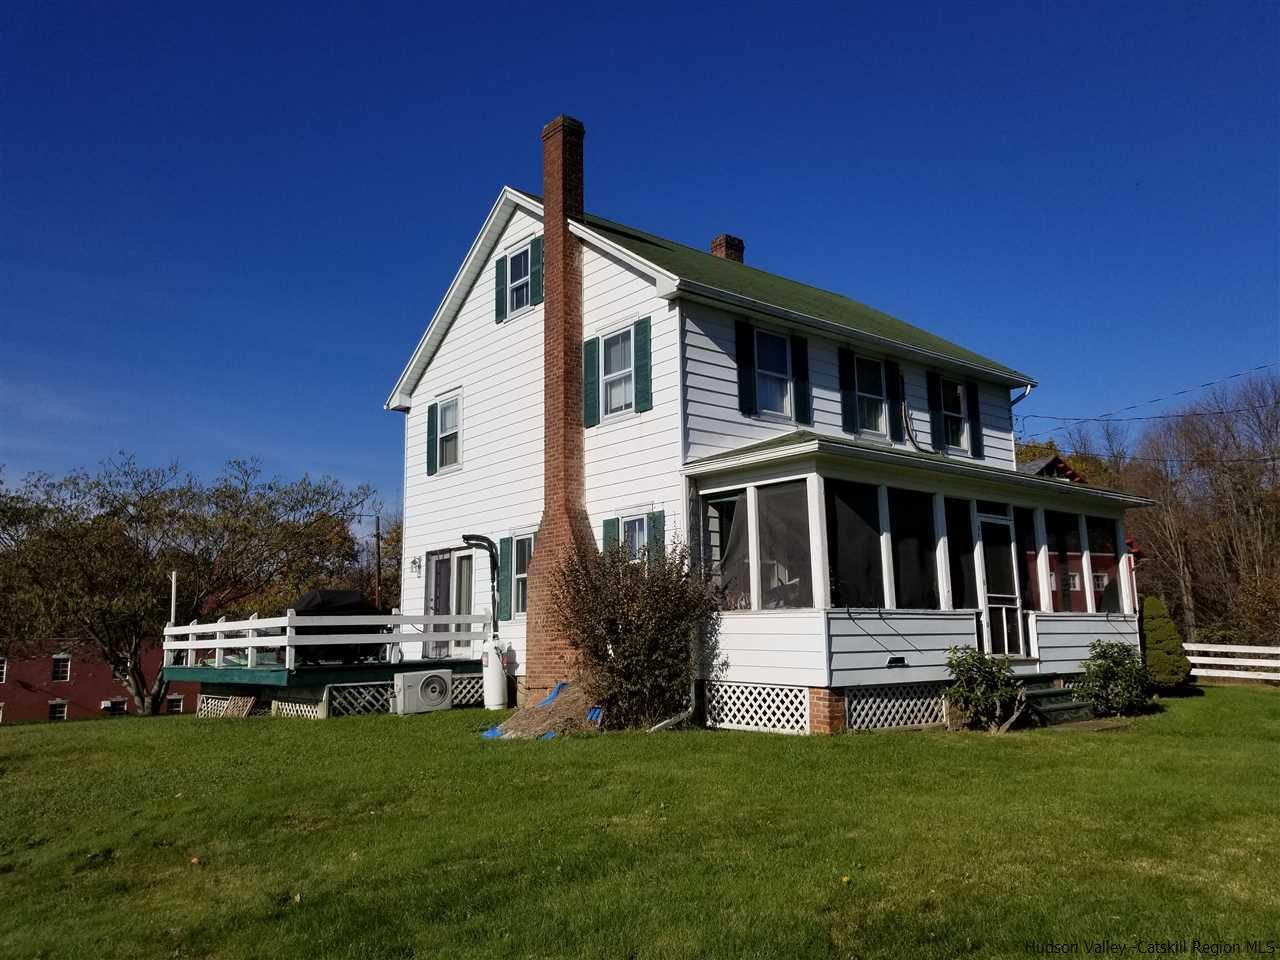 Single Family Home for Sale at 1592 Rt. 9W 1592 Rt. 9W Esopus, New York 12429 United States